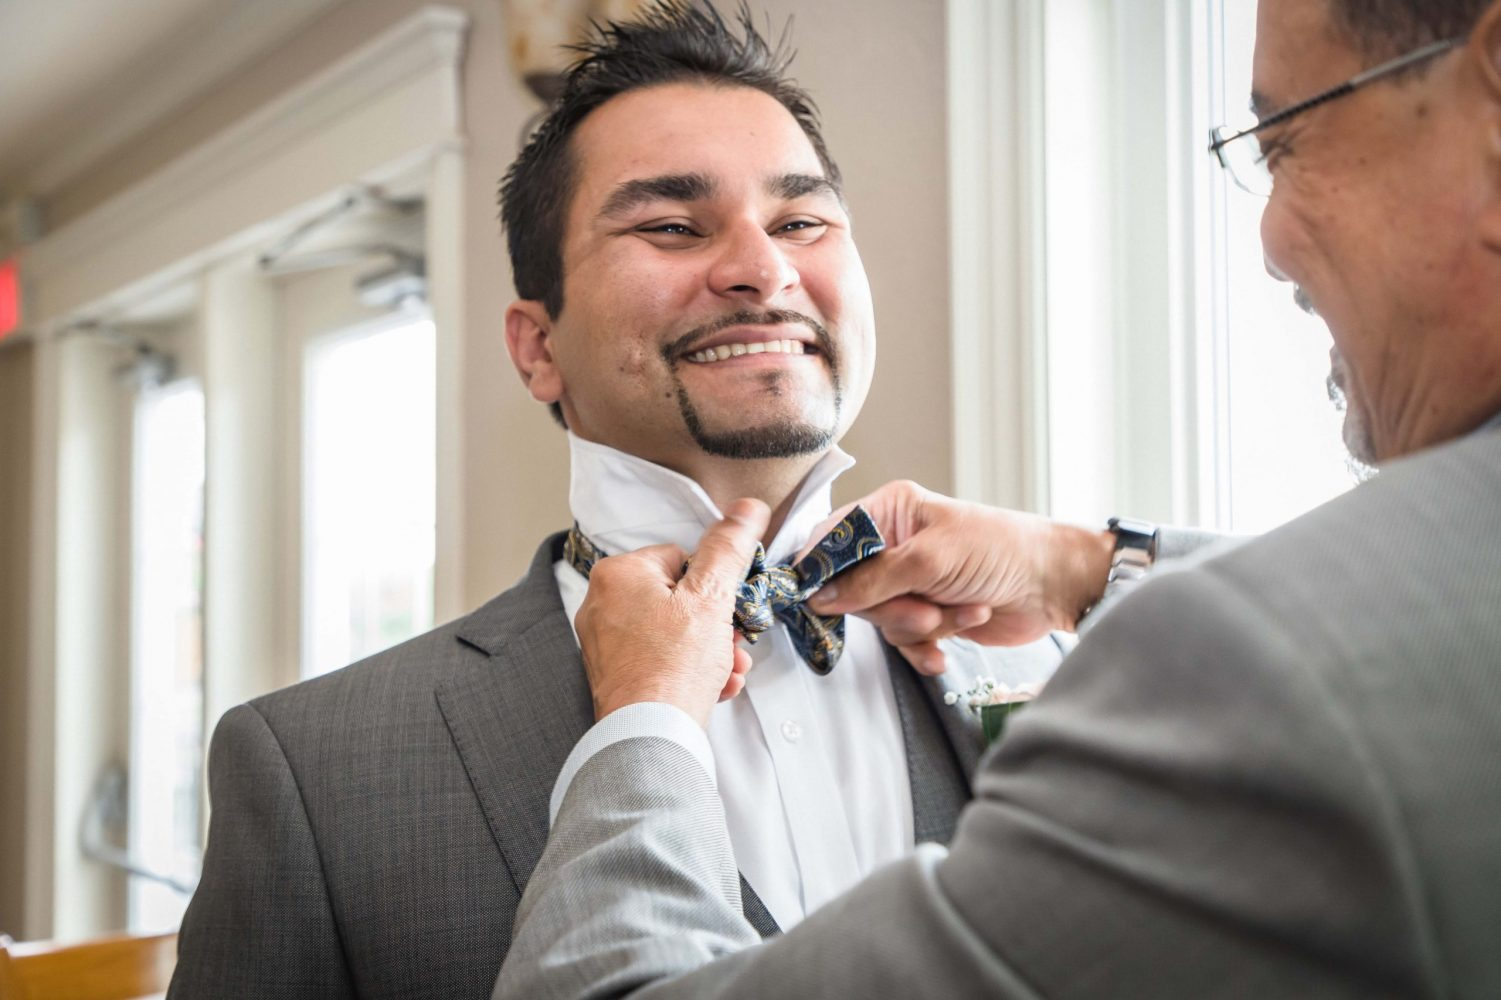 groom photos, getting ready photos, toronto wedding photographer